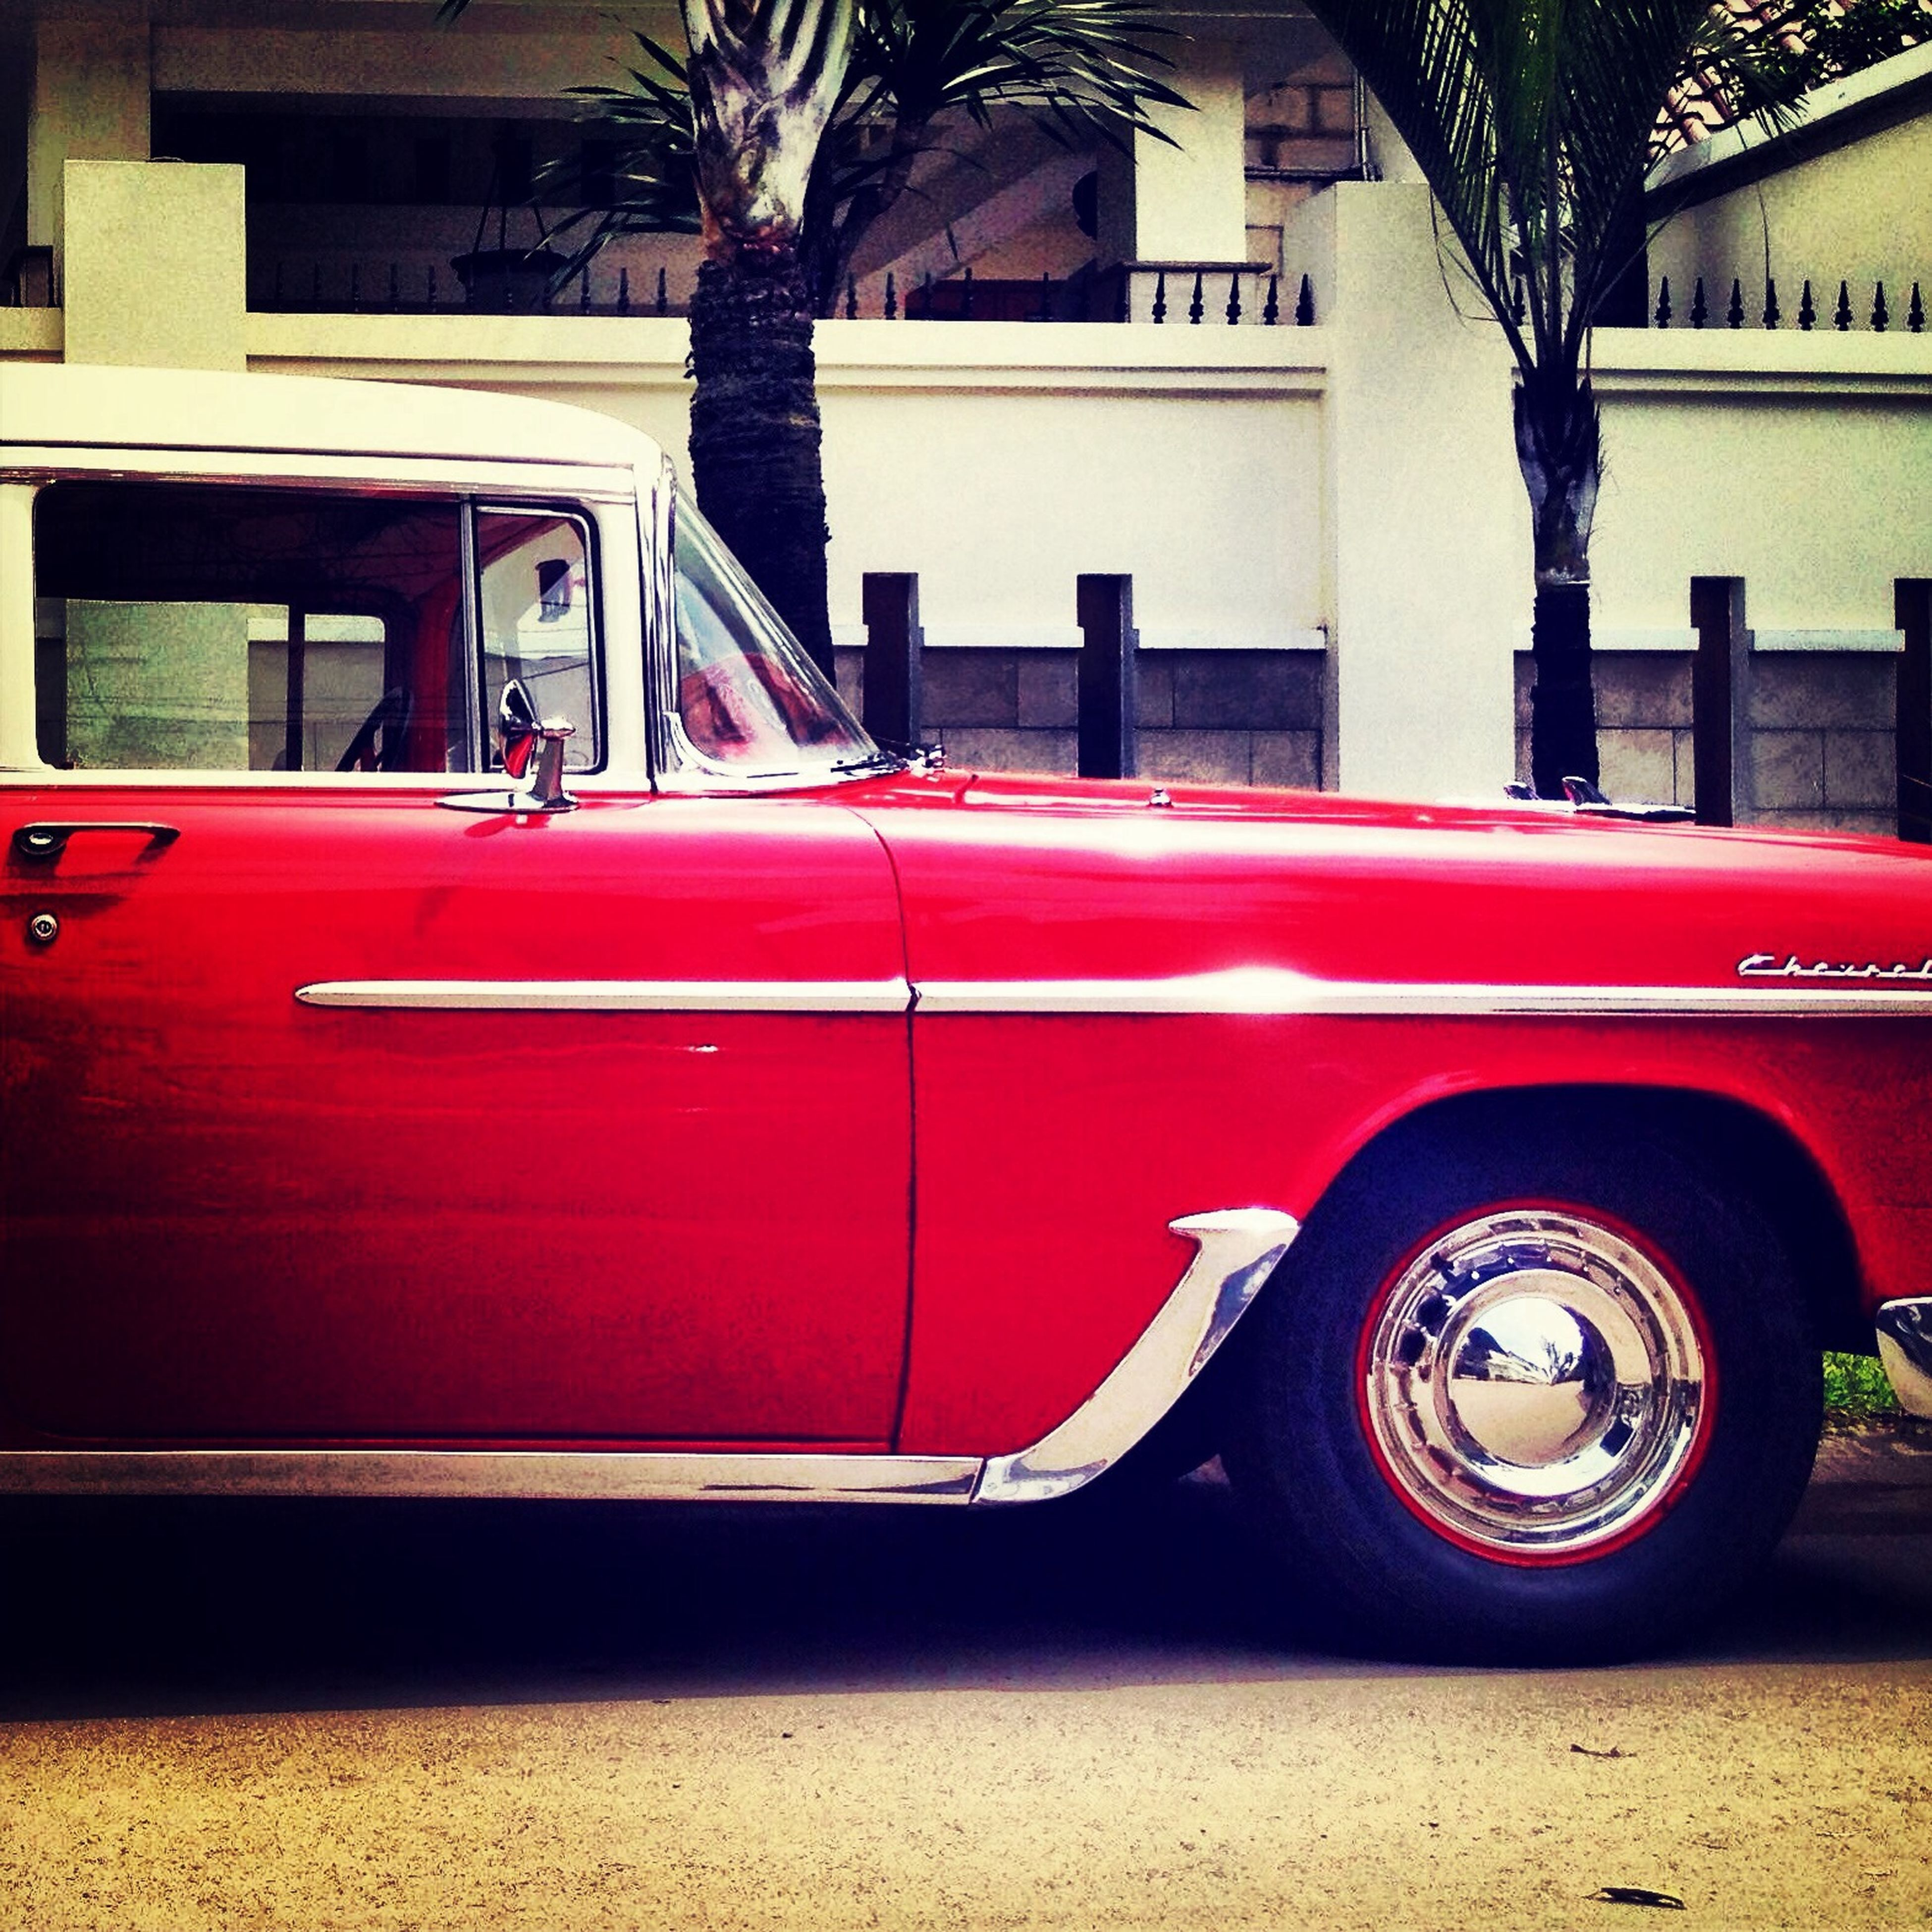 land vehicle, car, mode of transport, transportation, building exterior, architecture, built structure, street, red, tree, city, stationary, parking, side view, outdoors, sitting, vintage car, parked, day, window